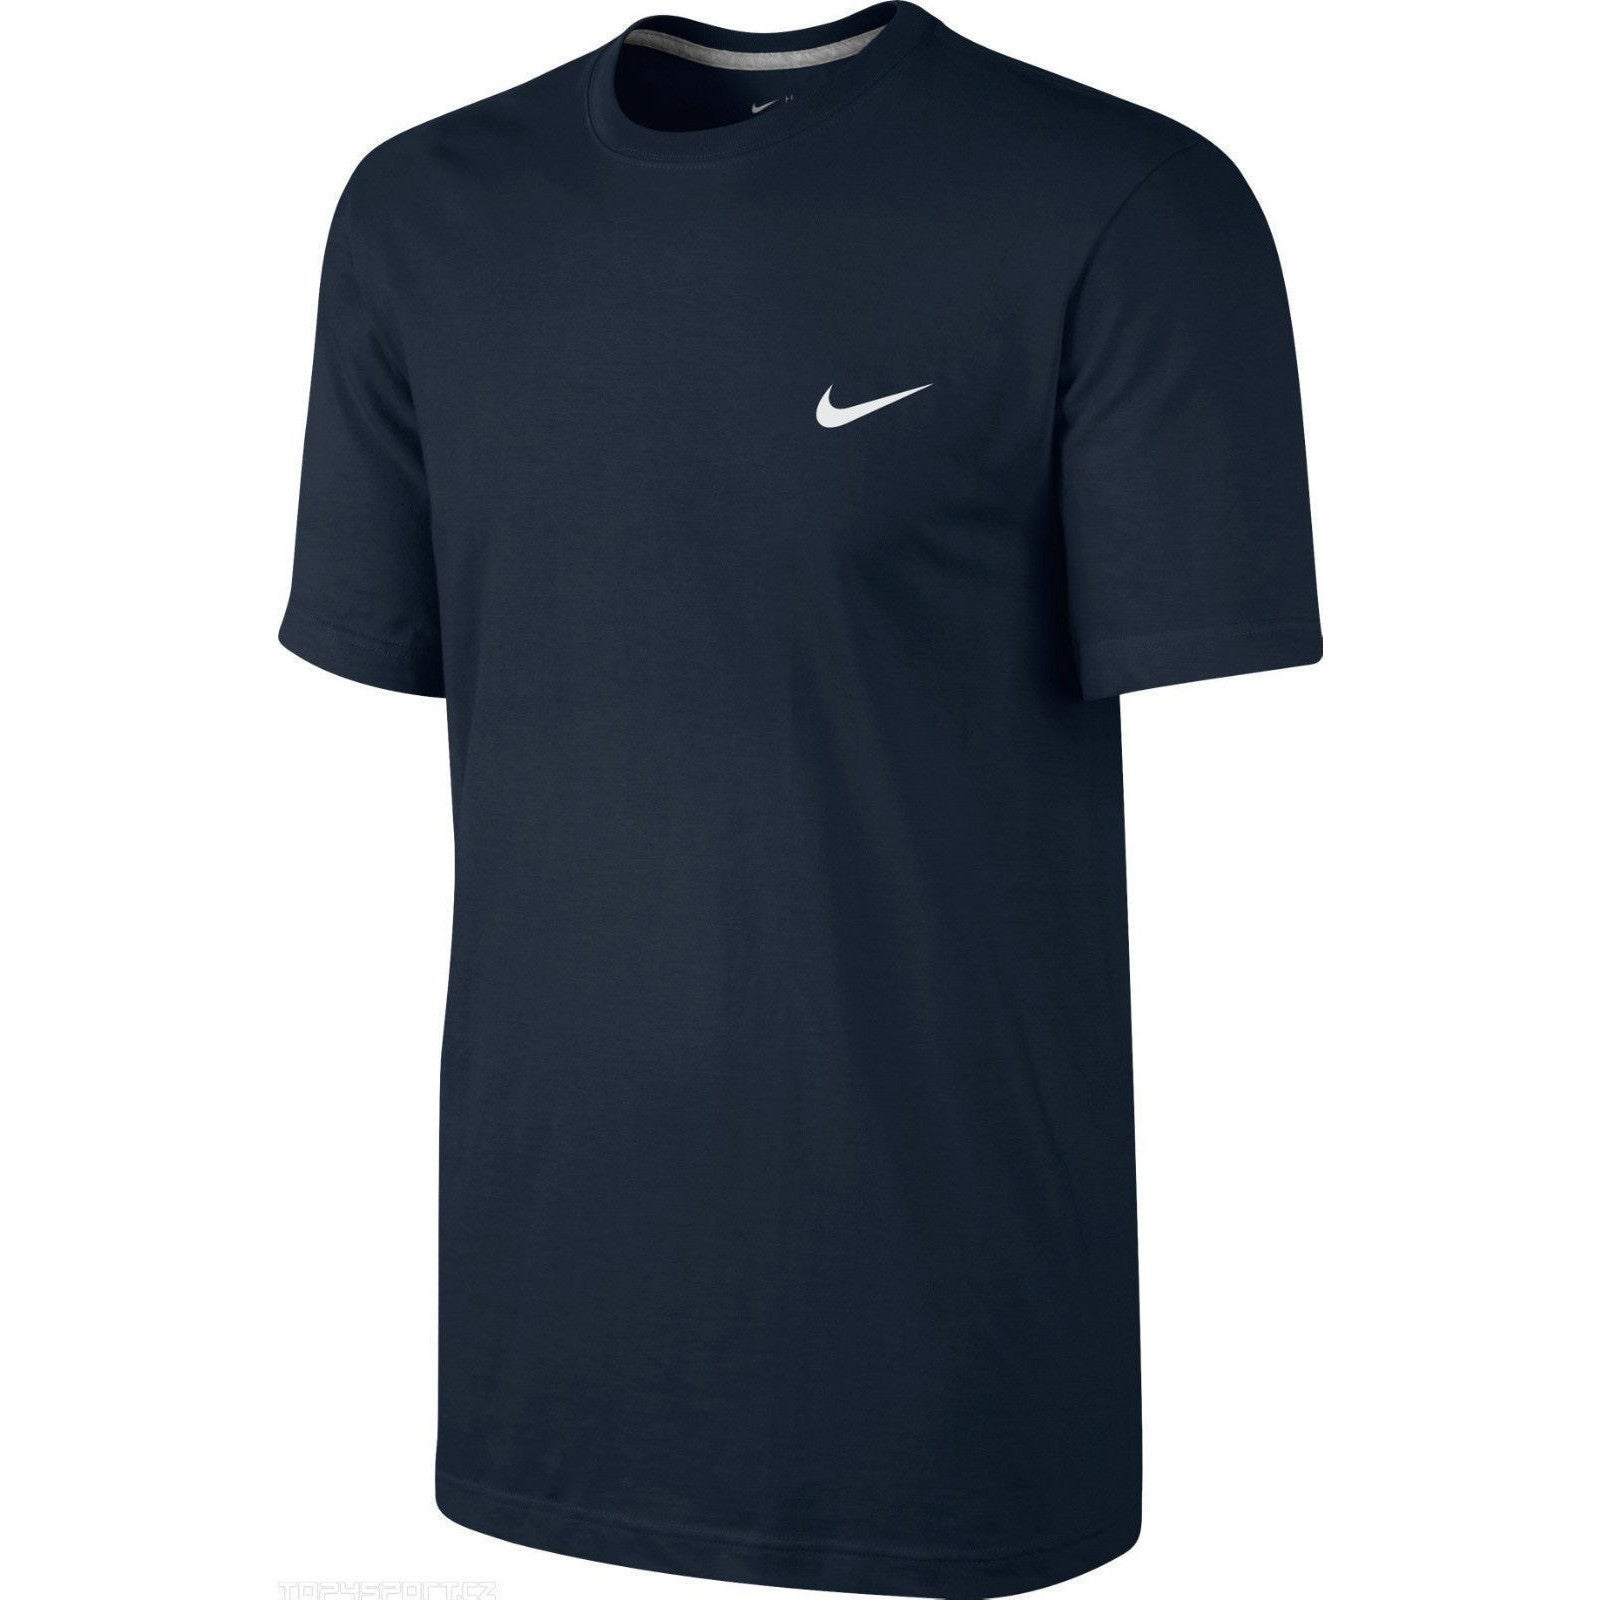 4bb24c4b8 Nike t shirt,nike sweatshirts,nike shop,nike top,black nike sweatshirt